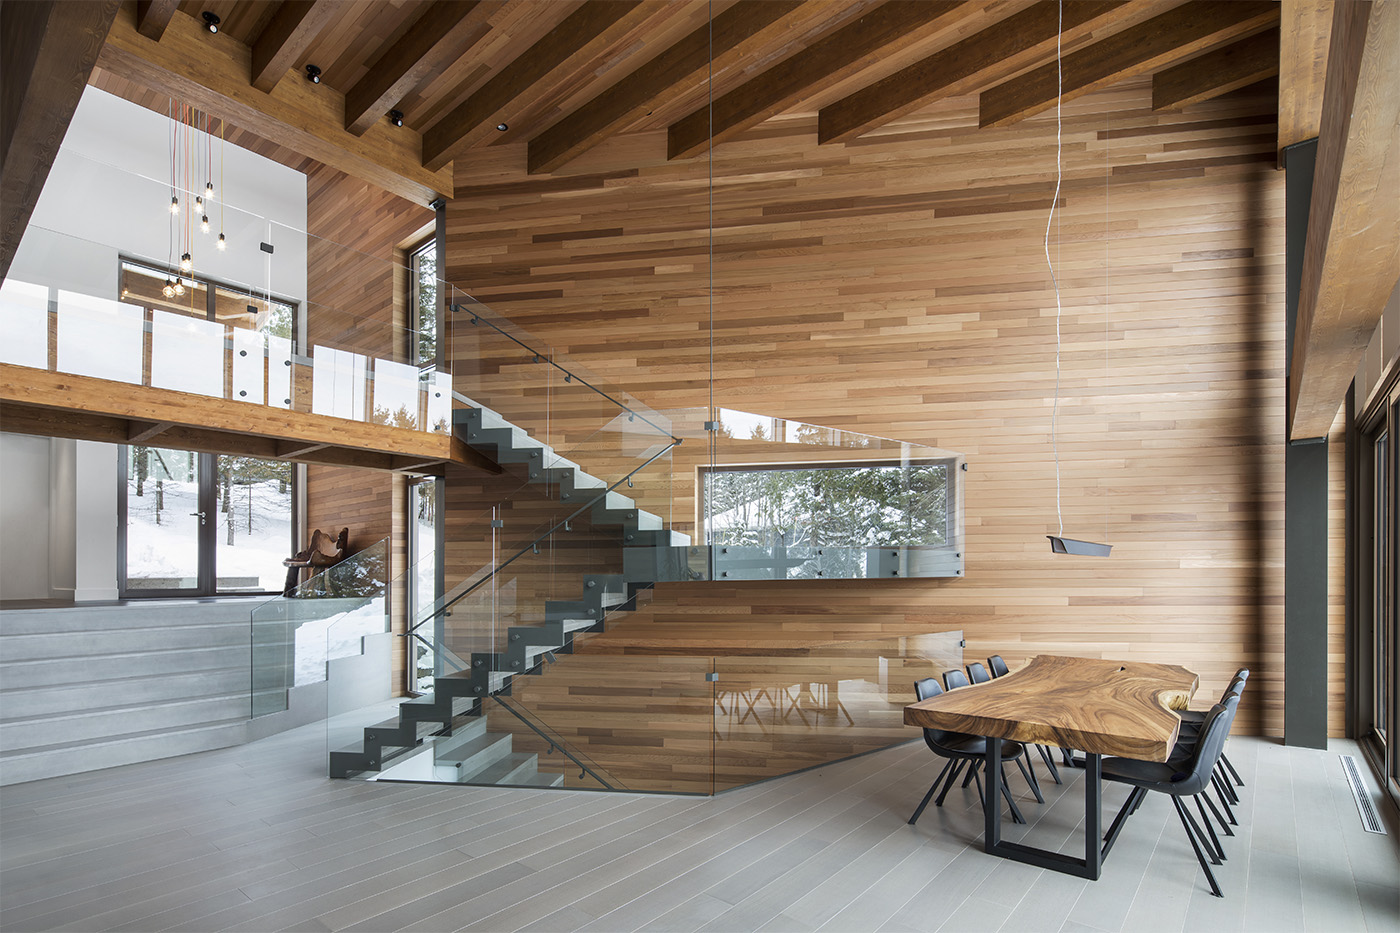 Internal wooden hut with glass and metal staircase